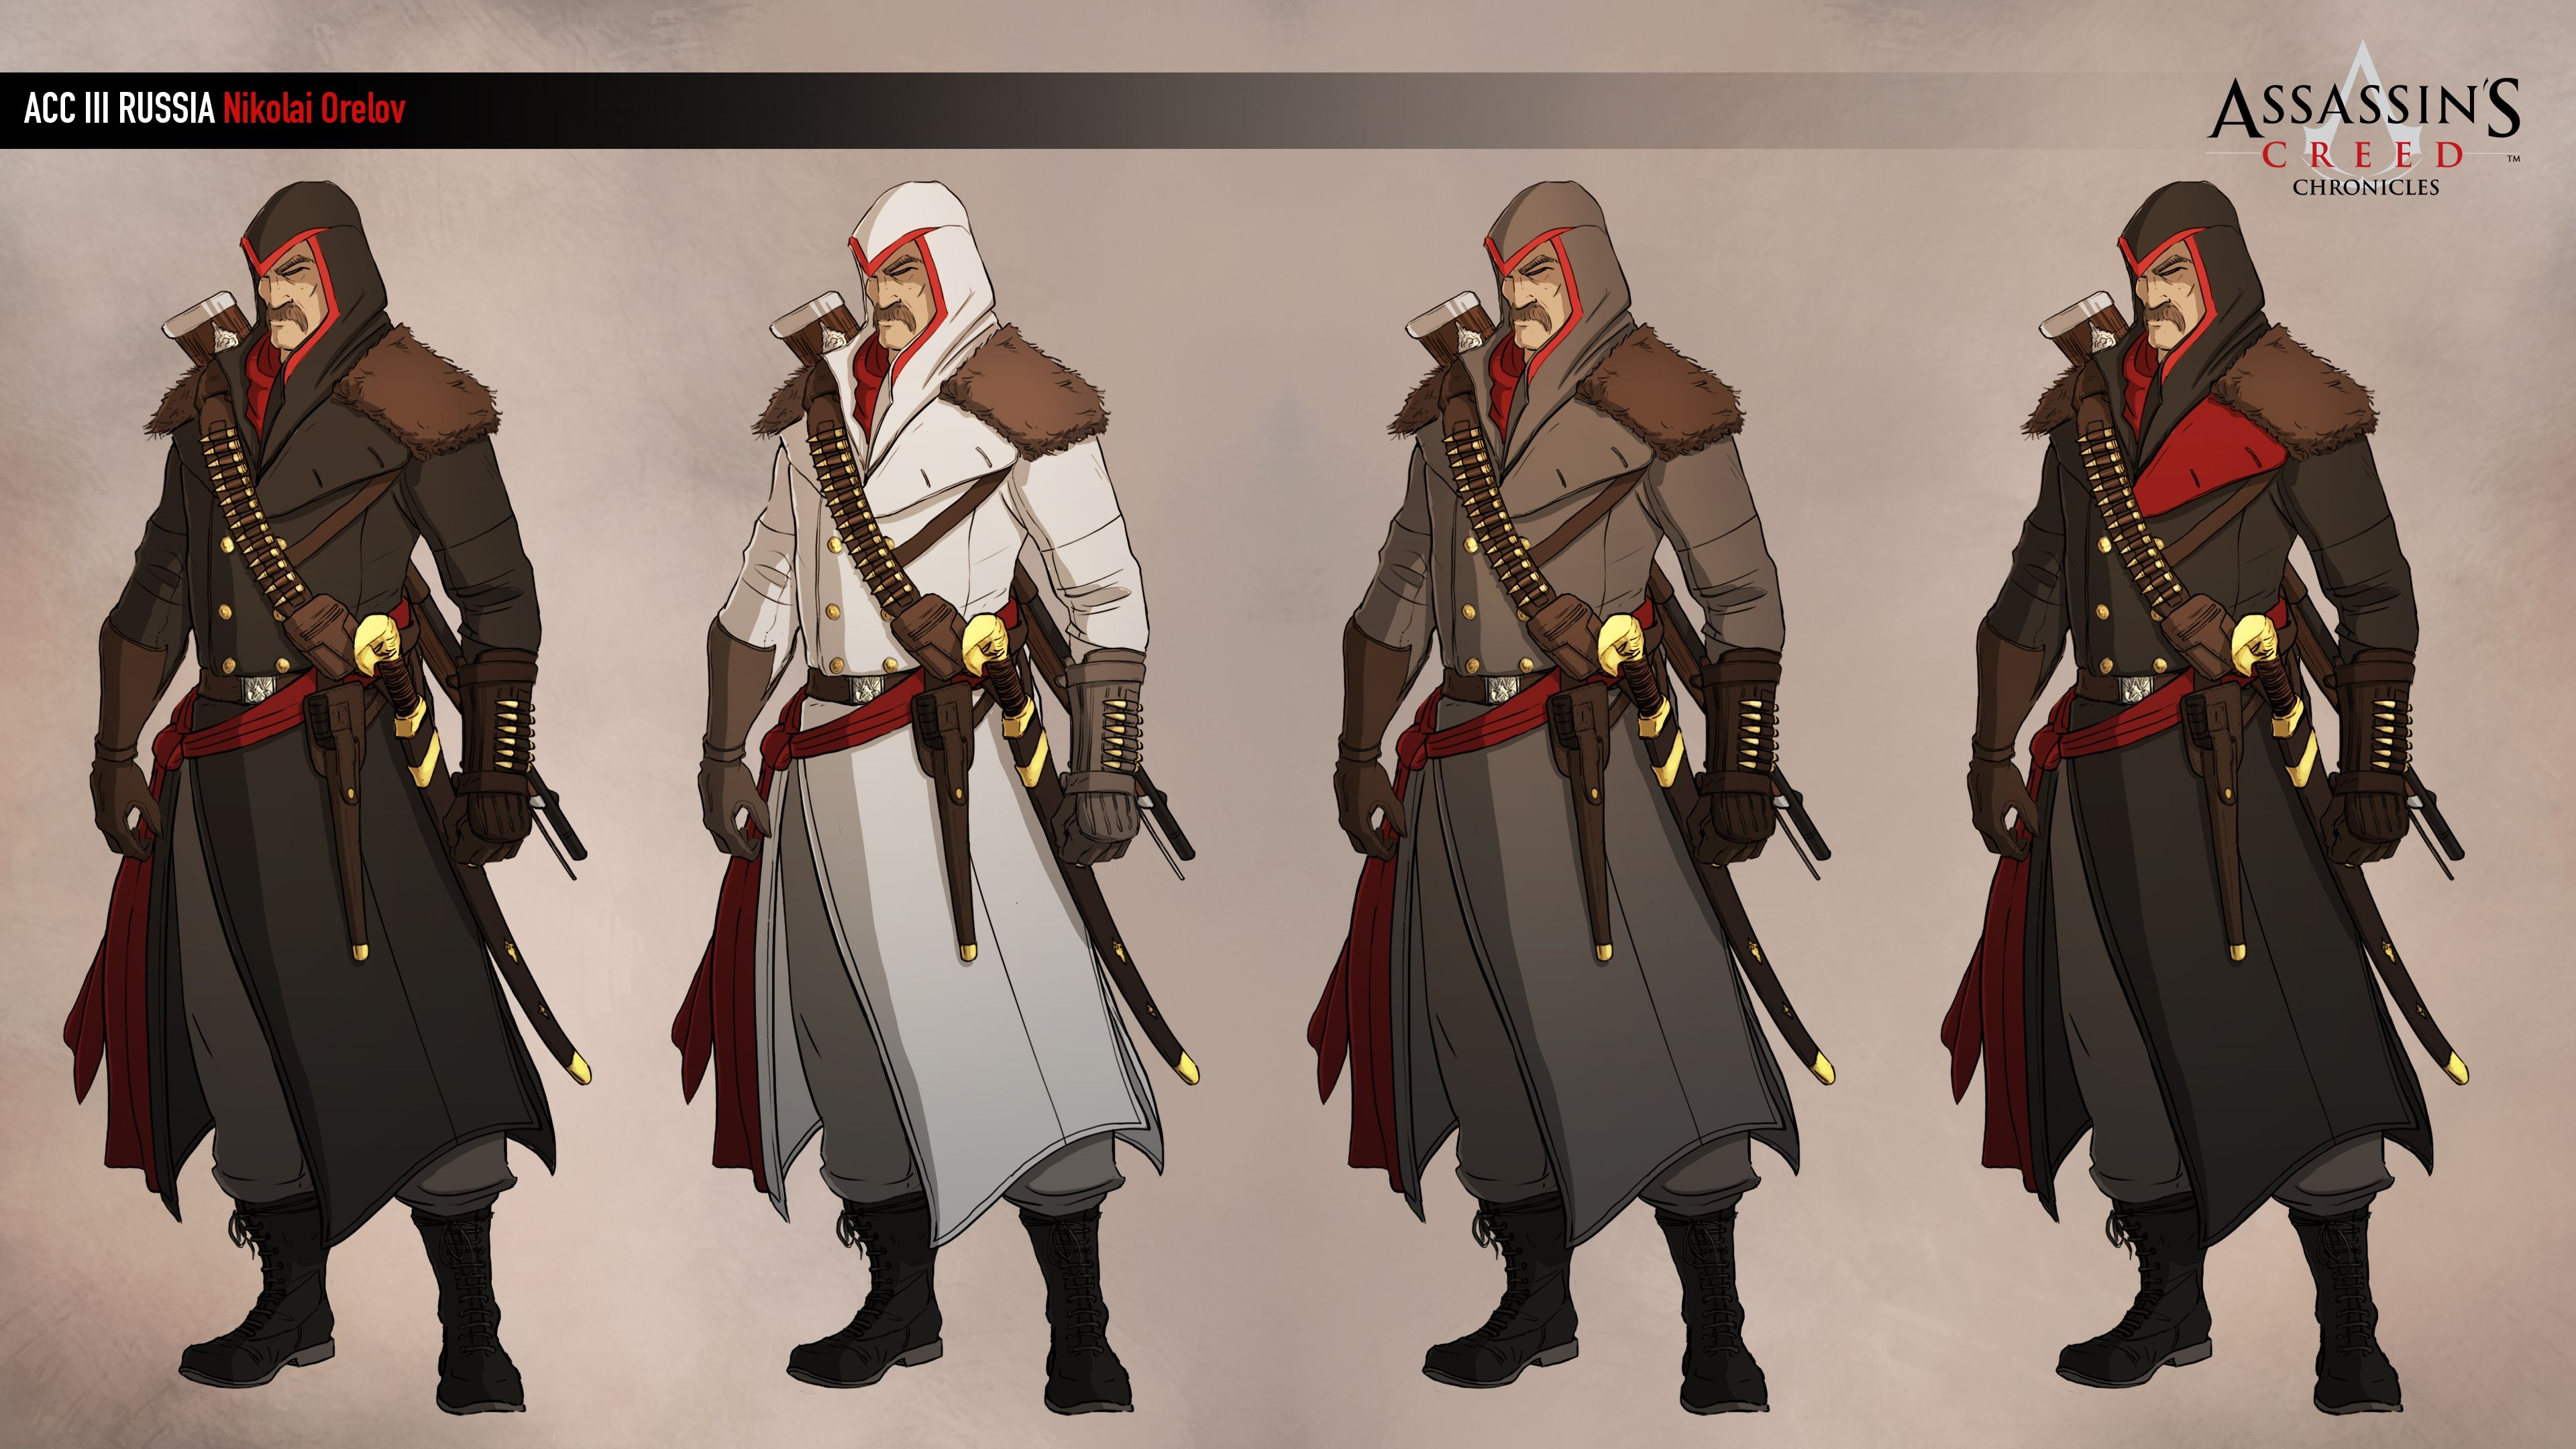 Assassin S Creed Russia Concept Art Assassins Creed Assassin S